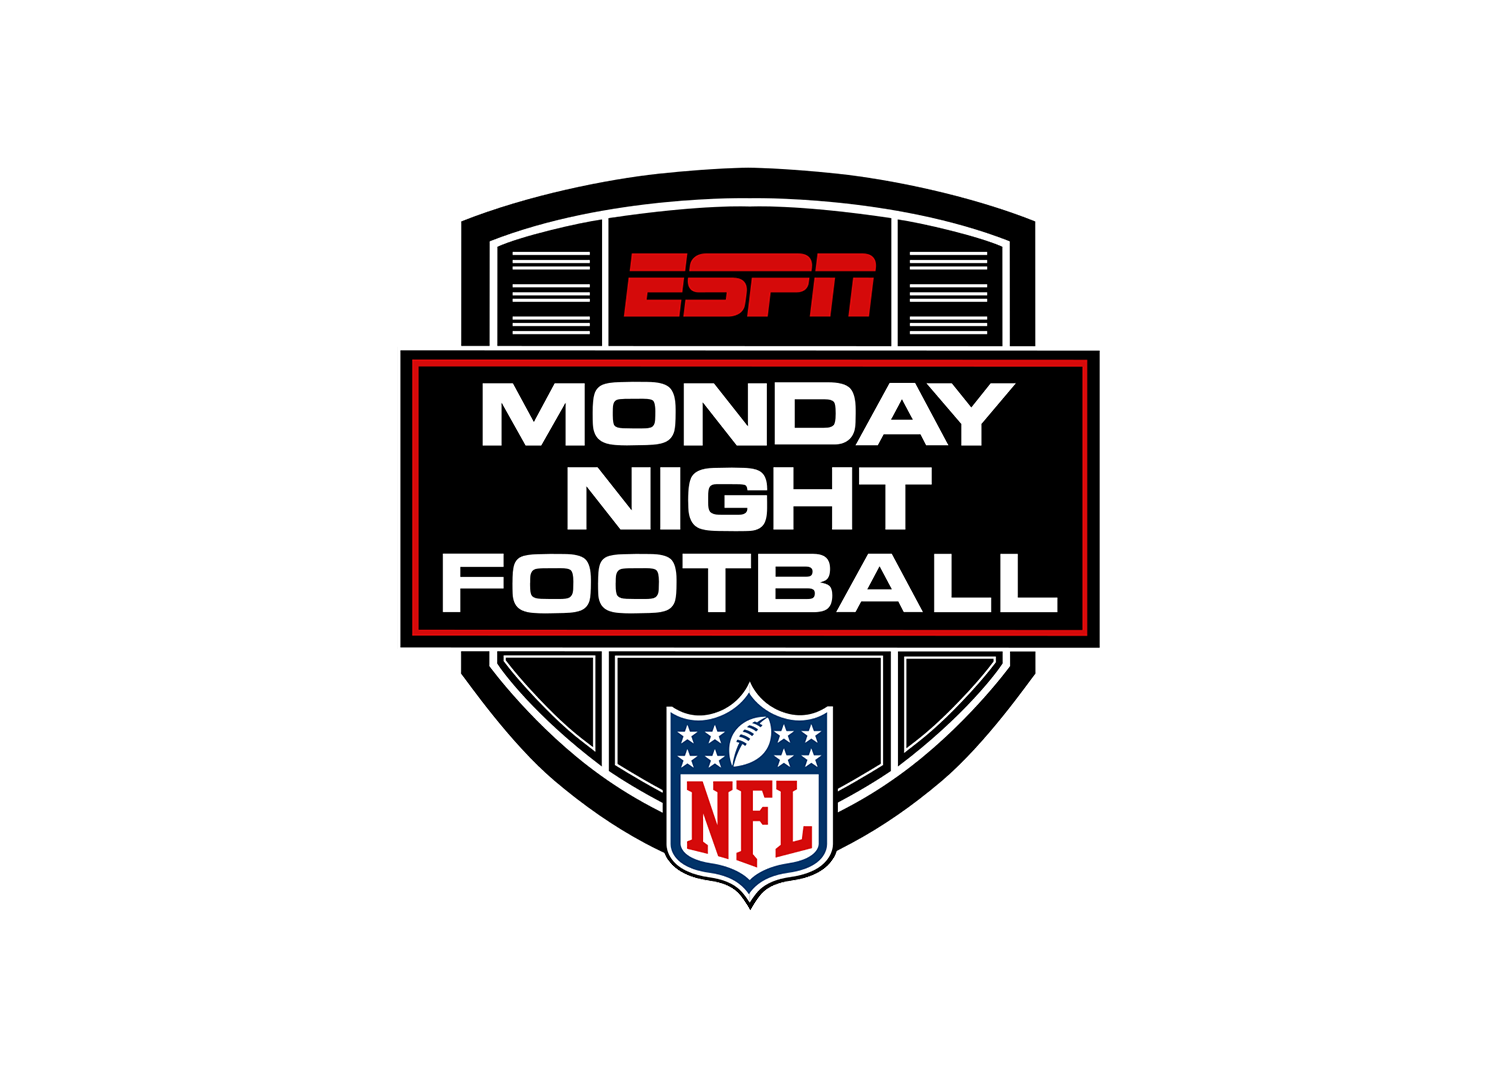 NFL Week 7 Overnights With Another Lackluster Game MNF Weak Again